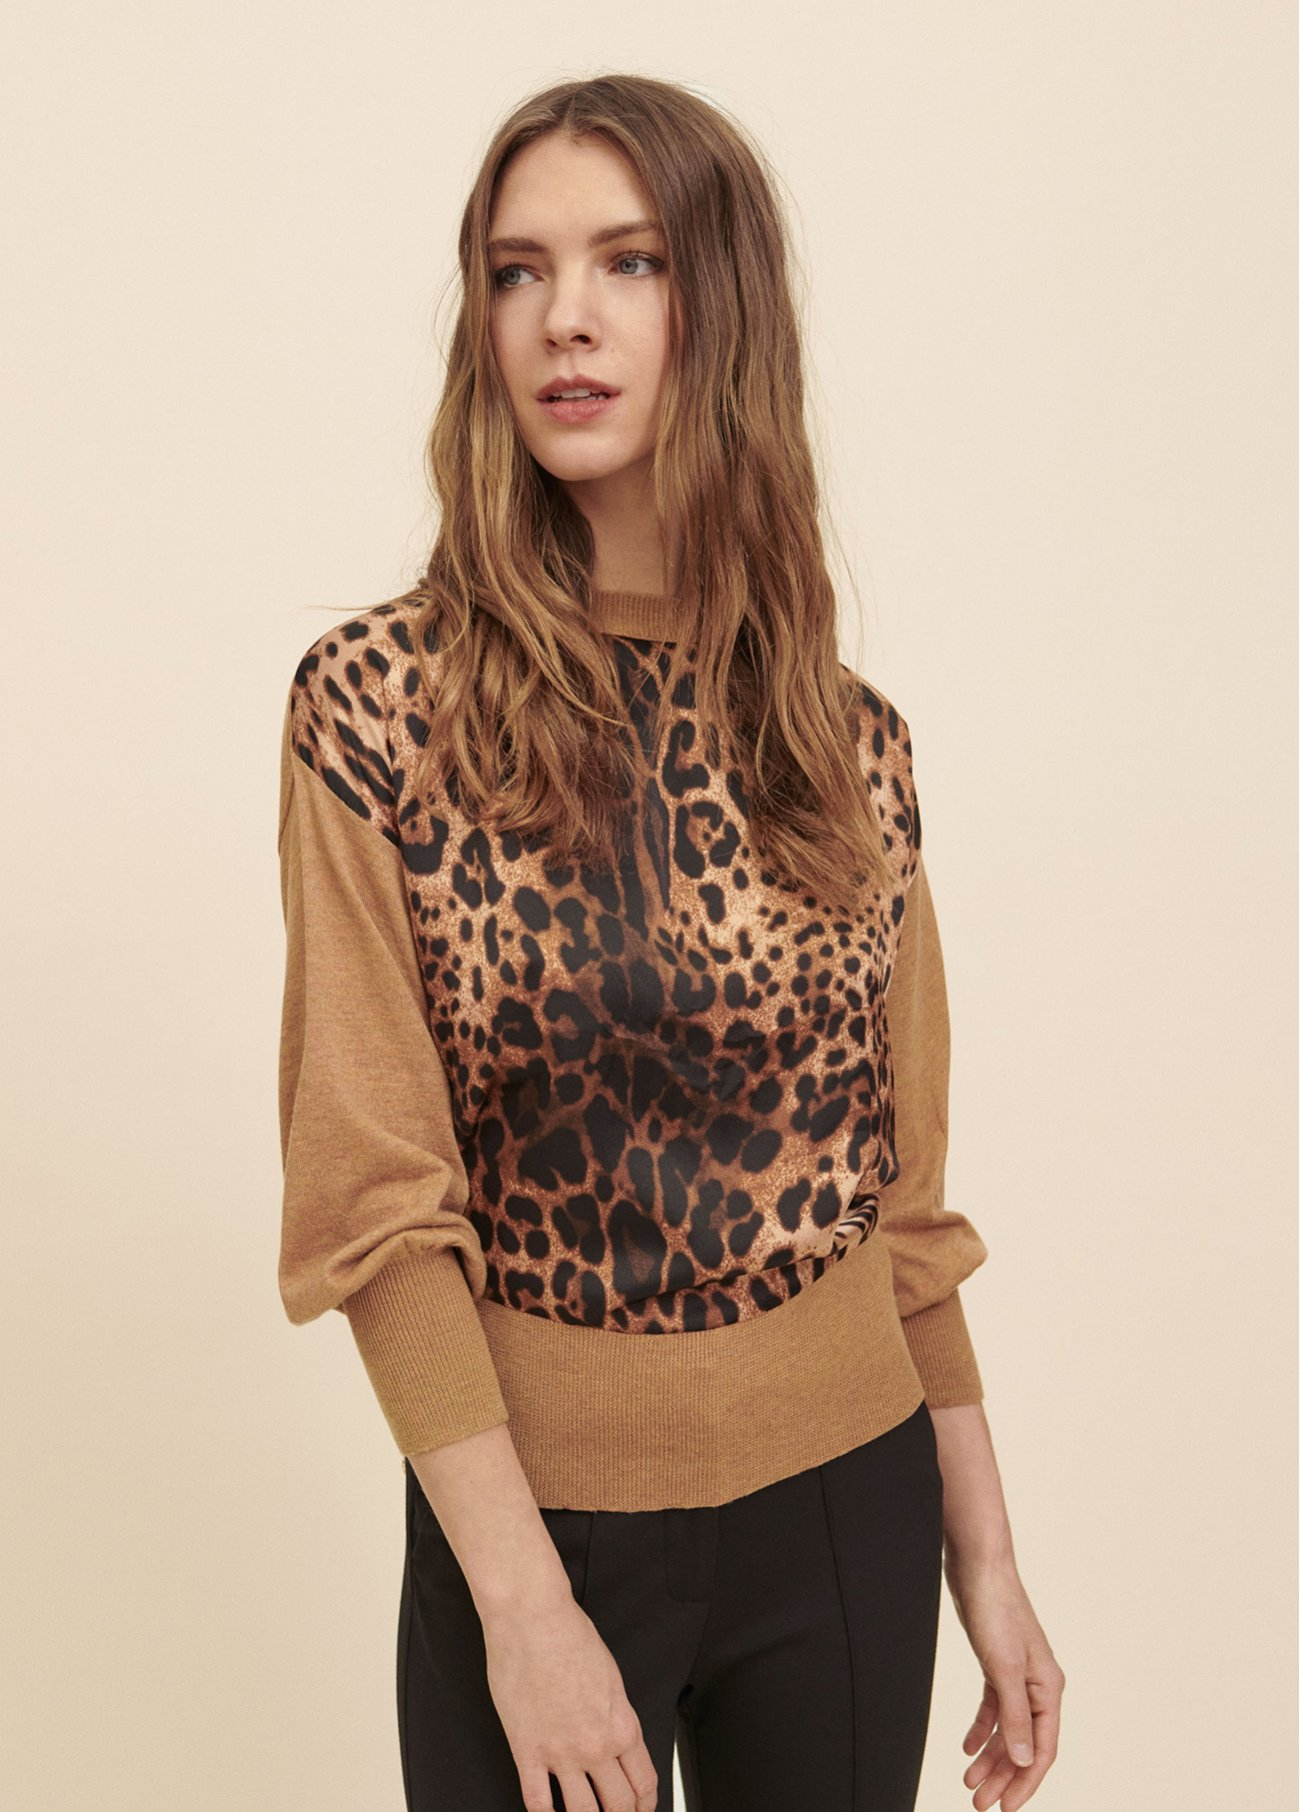 Pull over with printed animal fabric on